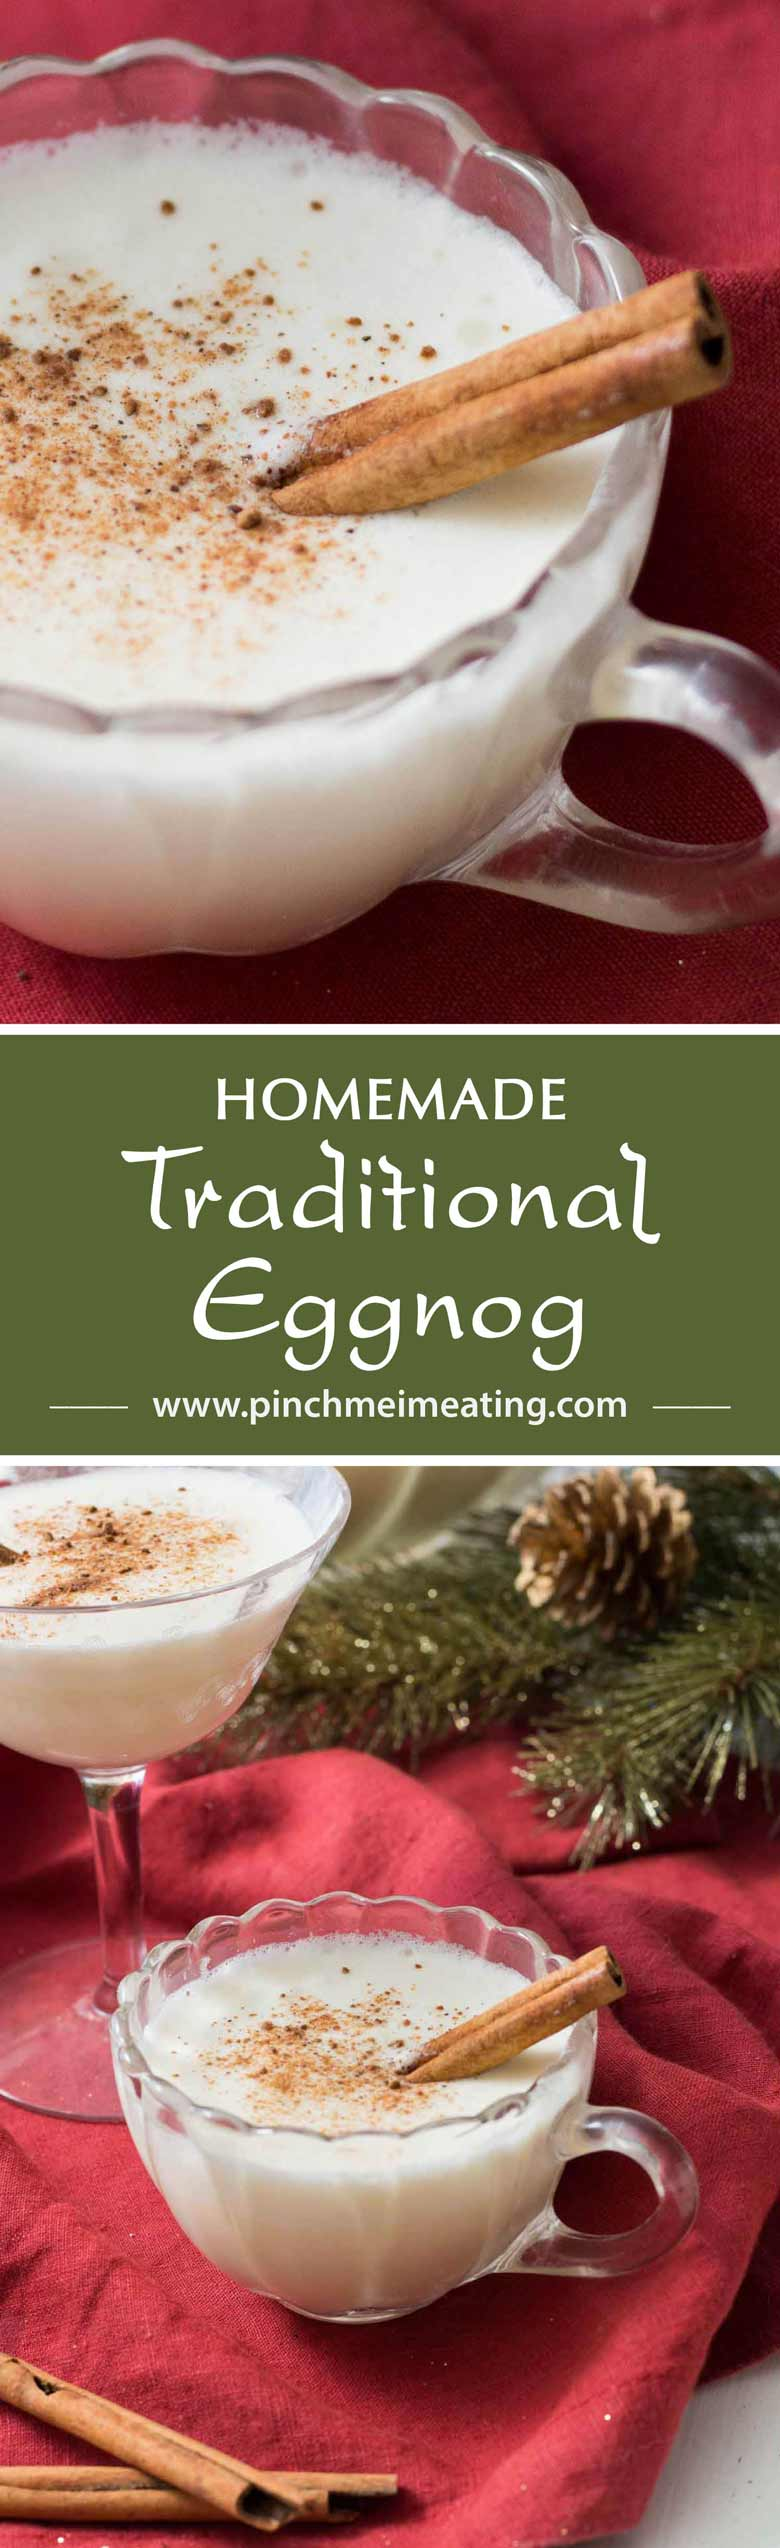 Who wouldn't want a glass of custard, meringue, and whipped cream? That's what this homemade traditional eggnog is like — plus a little booze. You'll never look back!